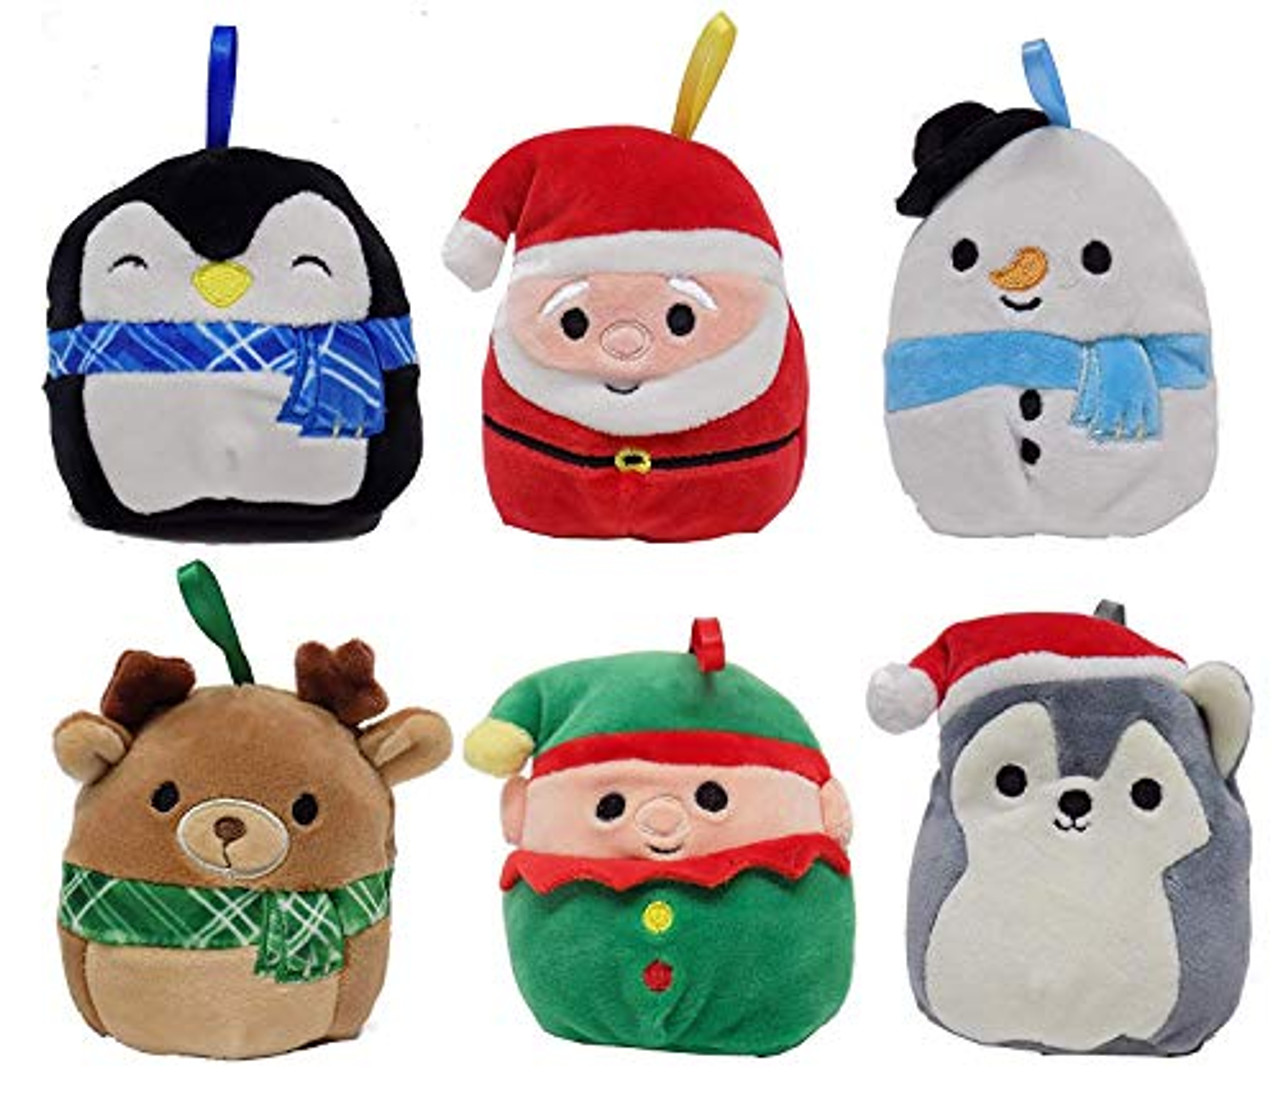 Set A 6 Pack Squishmallows Christmas Holiday Plush Ornaments Set